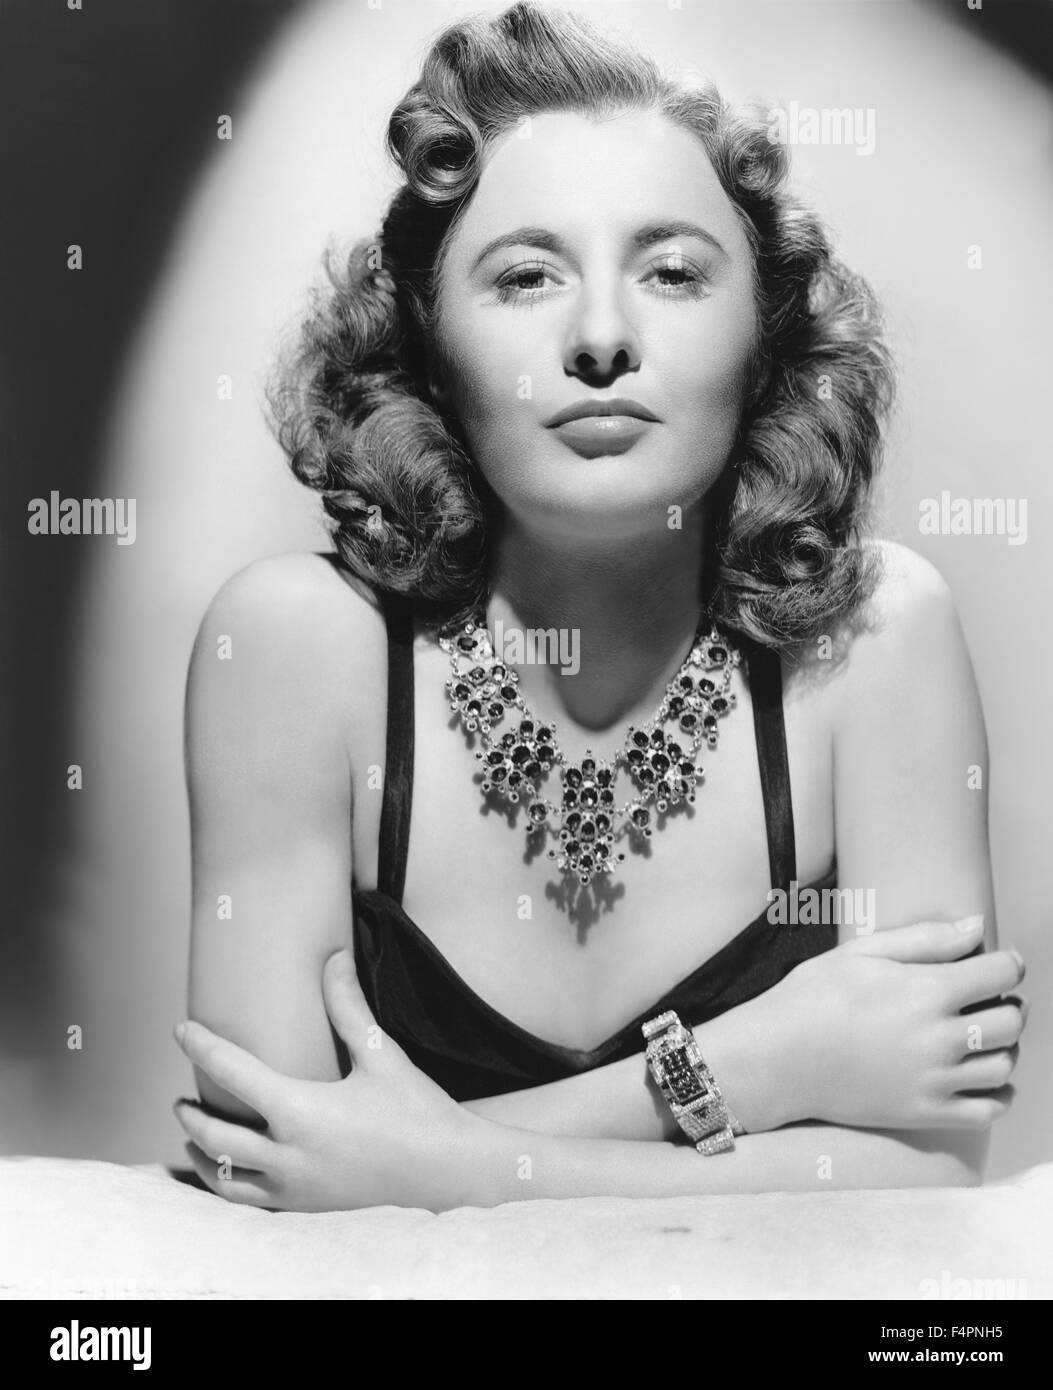 Barbara Stanwyck, 1942 [Warner Bros. Pictures] - Stock Image